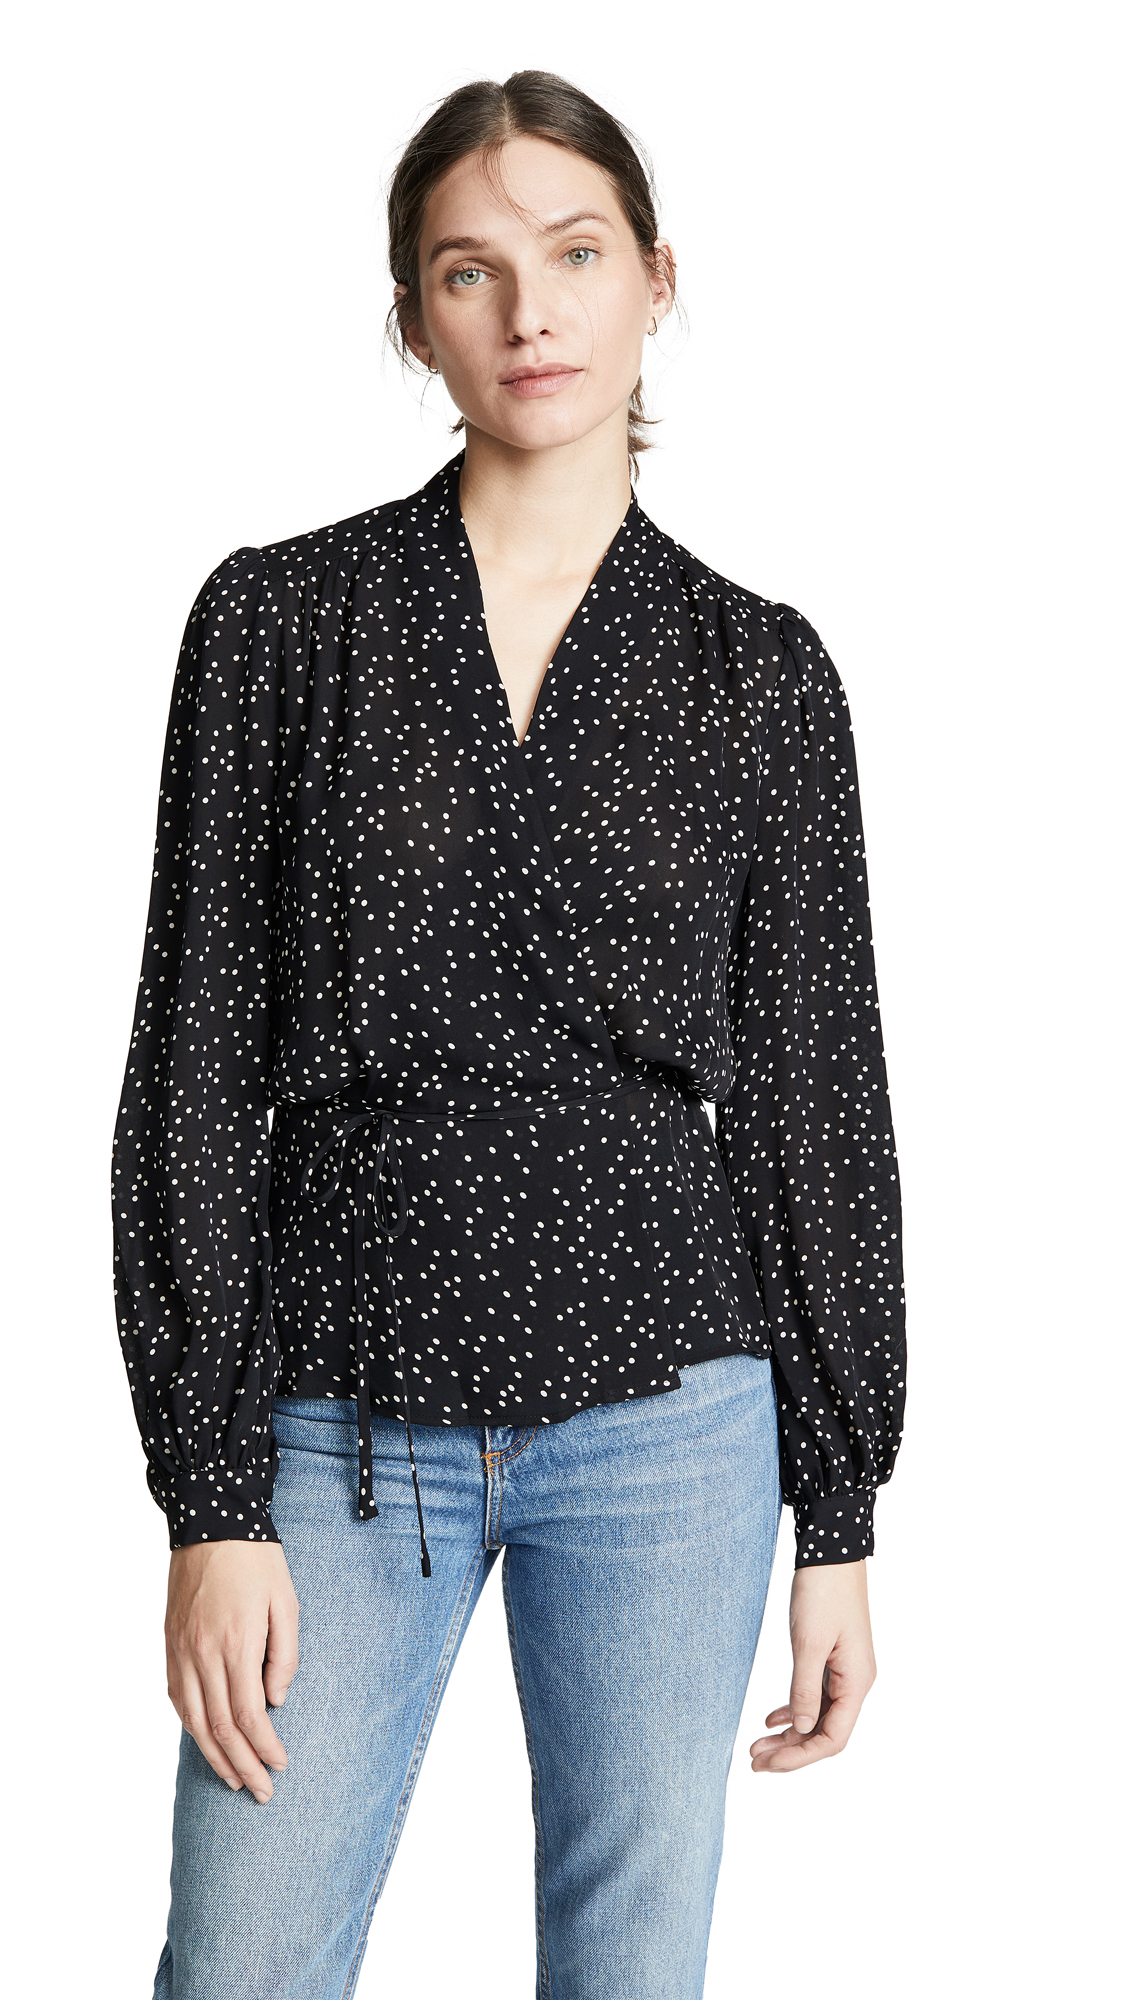 Cara Dot-Print Silk Wrap Blouse in Black/Ivory from L'AGENCE